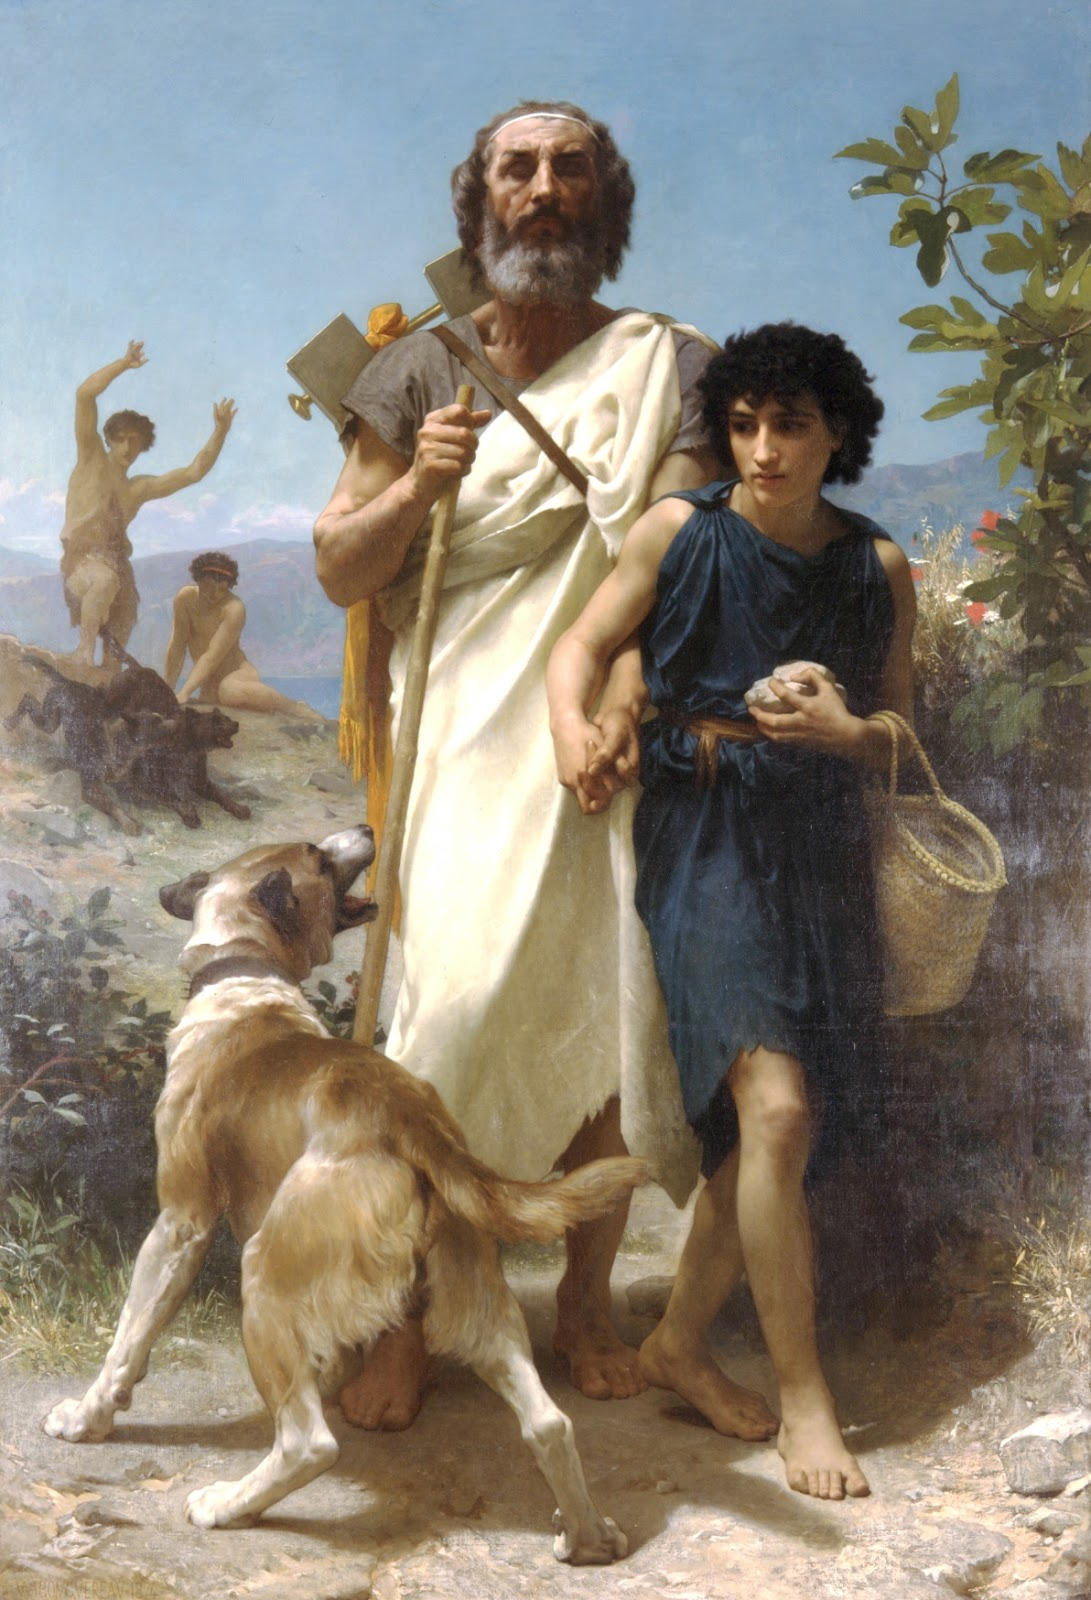 https://2.bp.blogspot.com/-t6ZWevtl4yo/WEb2_mvlzNI/AAAAAAAACtg/-YWzTdsmR5gJeLv75xDQ2eh6q3bs5WD4ACLcB/s1600/William-Adolphe_Bouguereau_%25281825-1905%2529_-_Homer_and_his_Guide_%25281874%2529.jpg